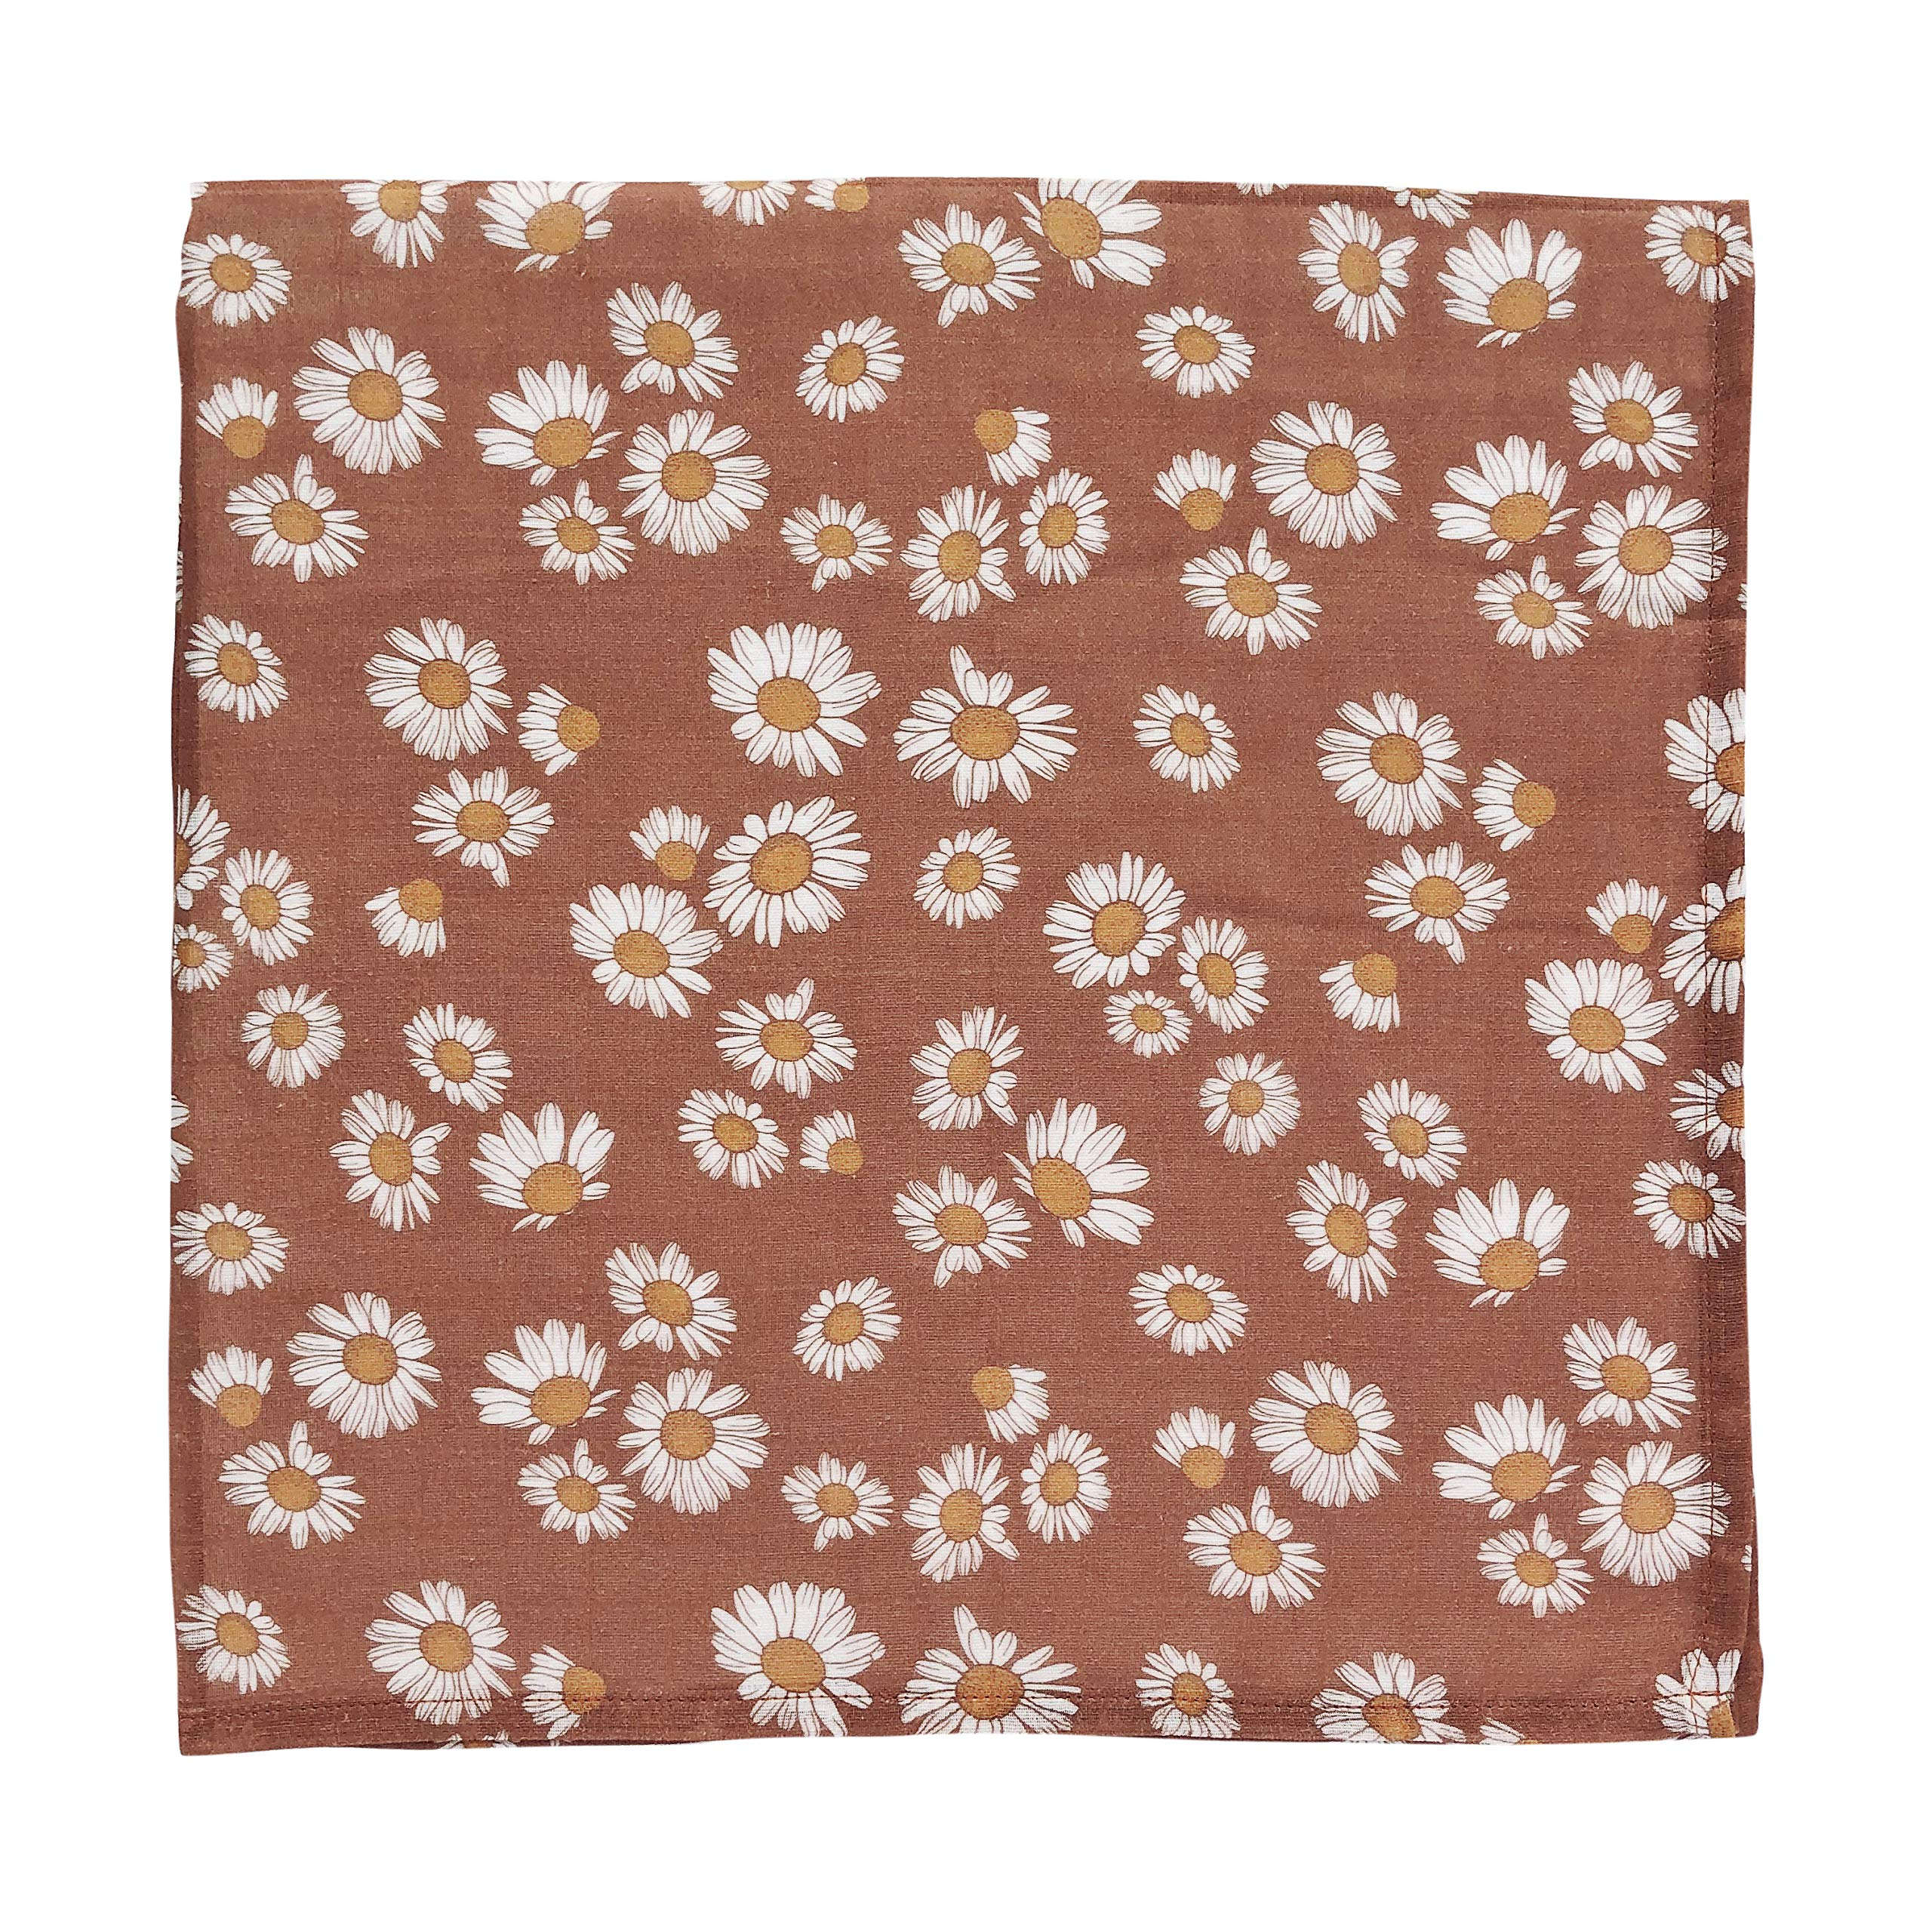 Mini Scout Daisy (Clay Brown) - Muslin Swaddle Blanket, Newborn Essentials Wrap for Girls, Floral Infant Receiving Cover - Best for Baby Shower Registry Gift by Mini Scout